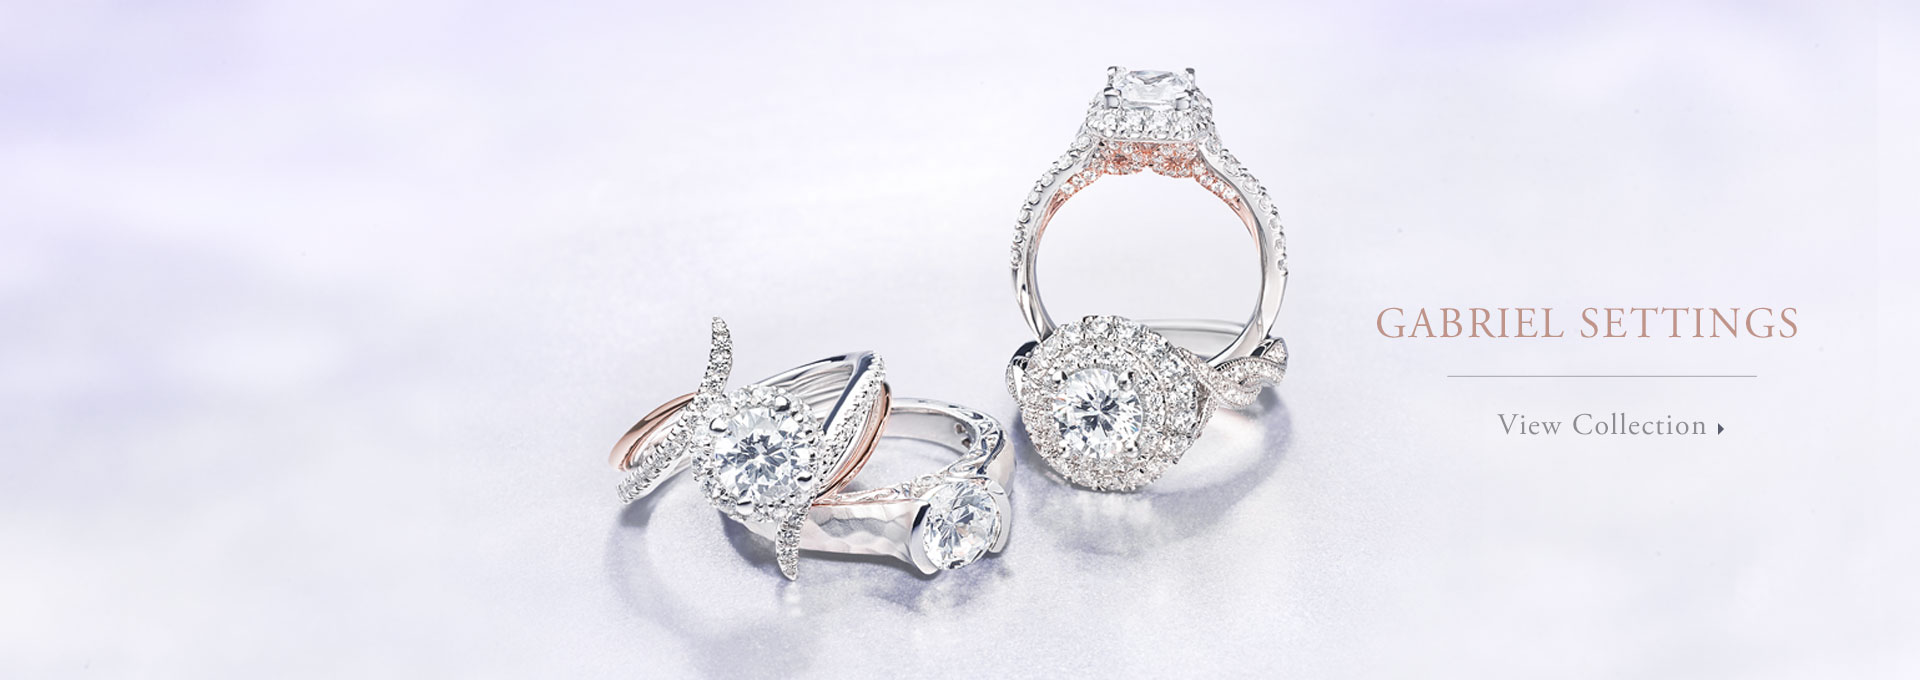 Engagement Ring Settings Gabriel & Co